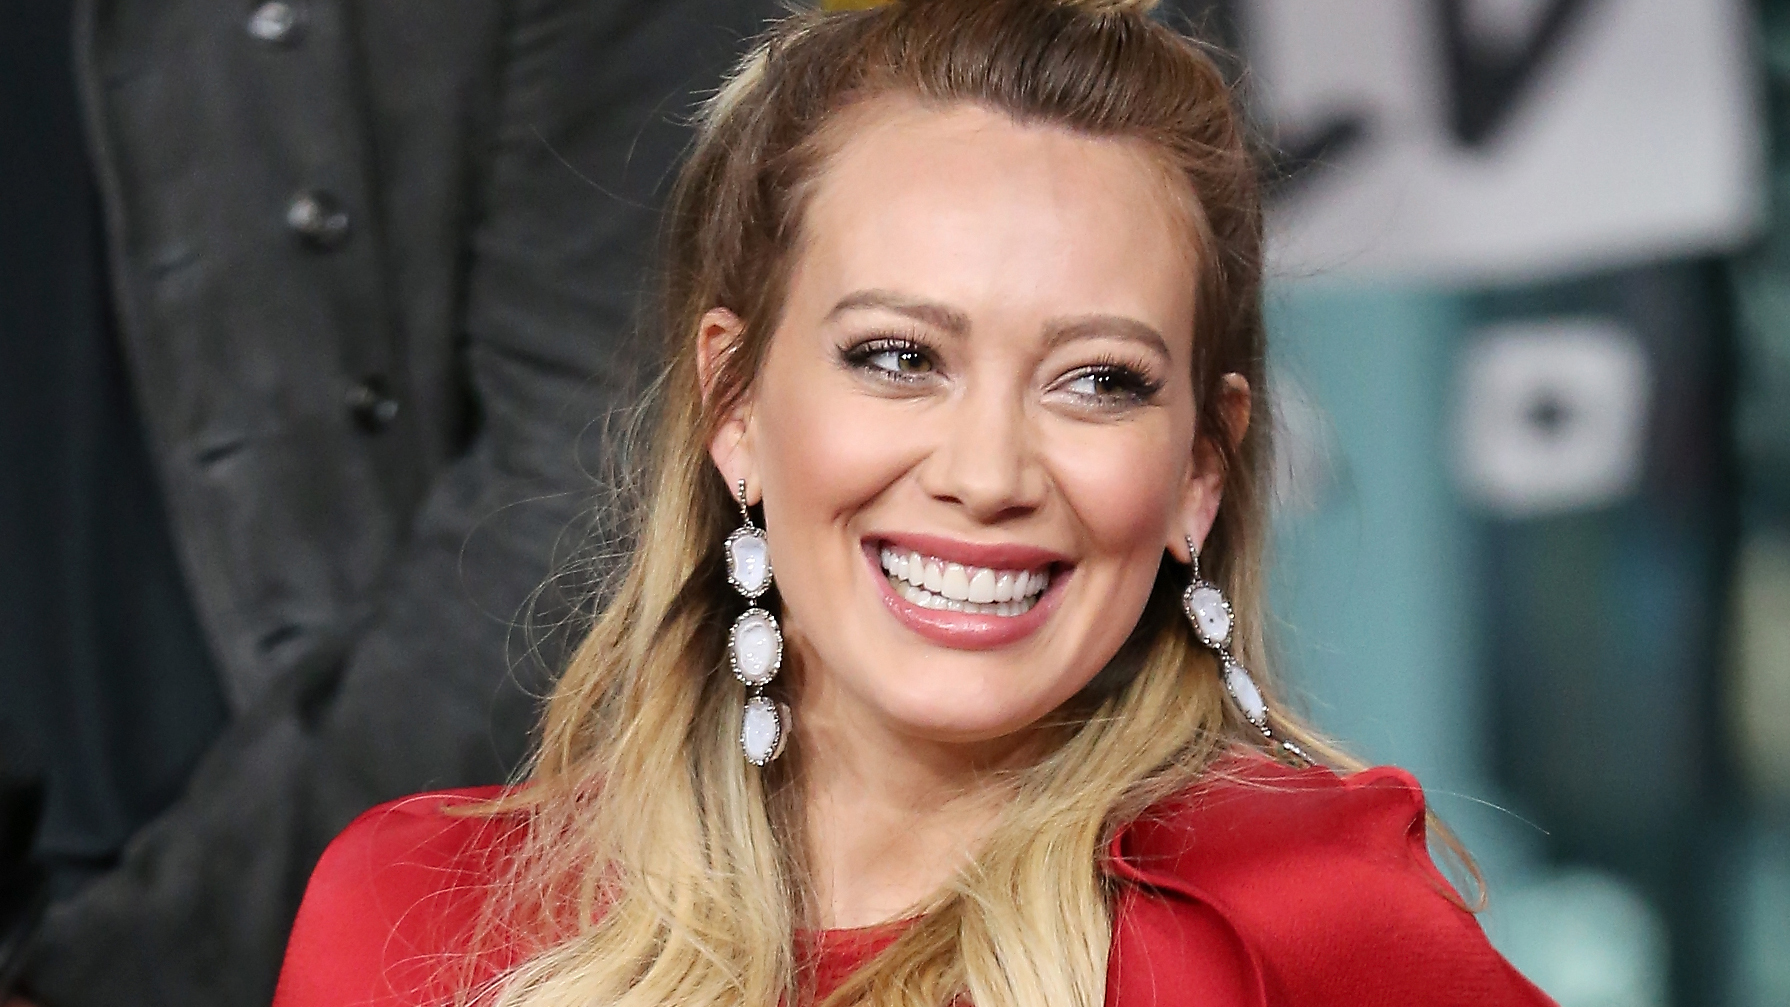 Hilary Duff's New '70s-Inspired Bangs Are Seriously Cool